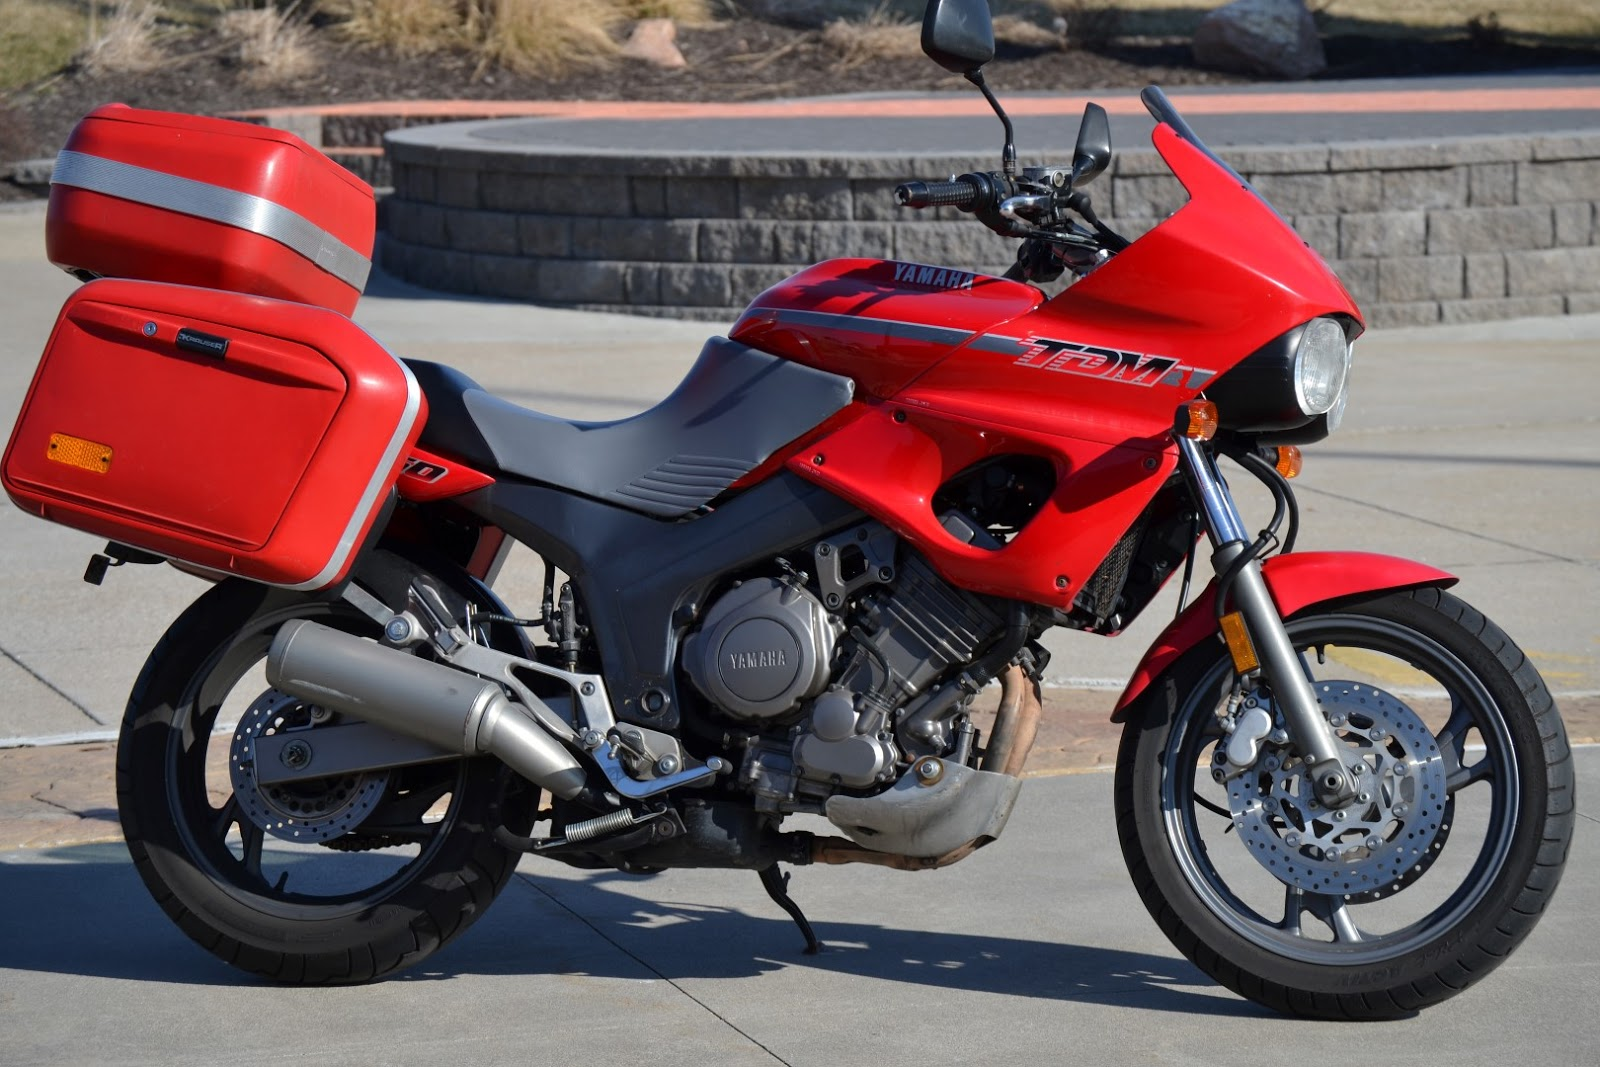 blog of the biker 1992 yamaha tdm 850 adventure motorcycle red with krauser panniers. Black Bedroom Furniture Sets. Home Design Ideas